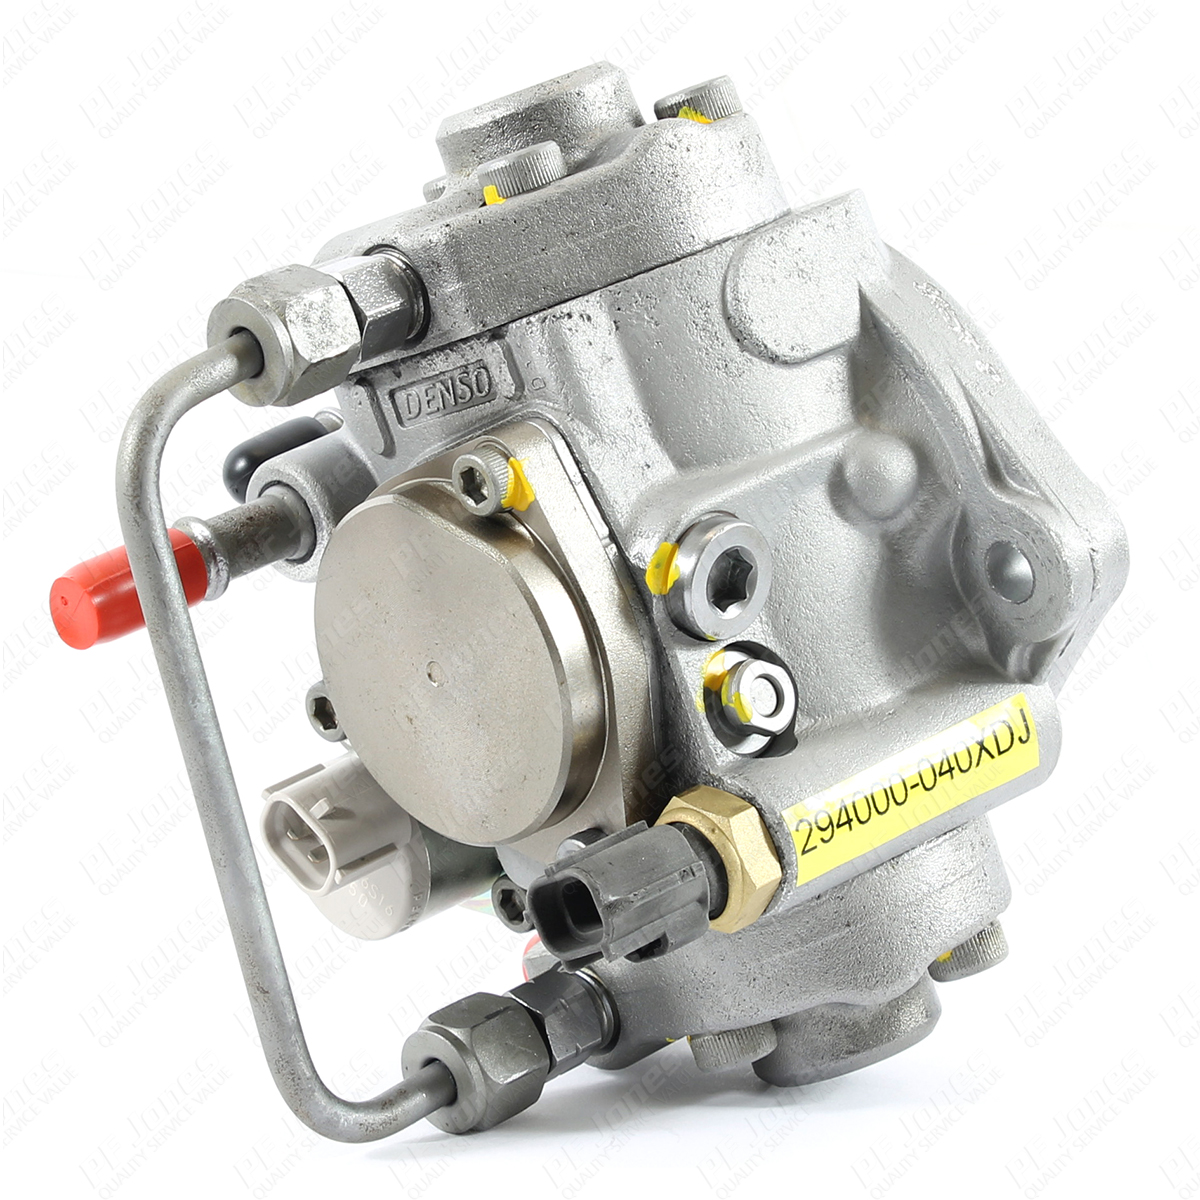 Peugeot Boxer 2.2 HDi 2006-Present Reconditioned Denso Diesel Fuel Pump 294000-0400